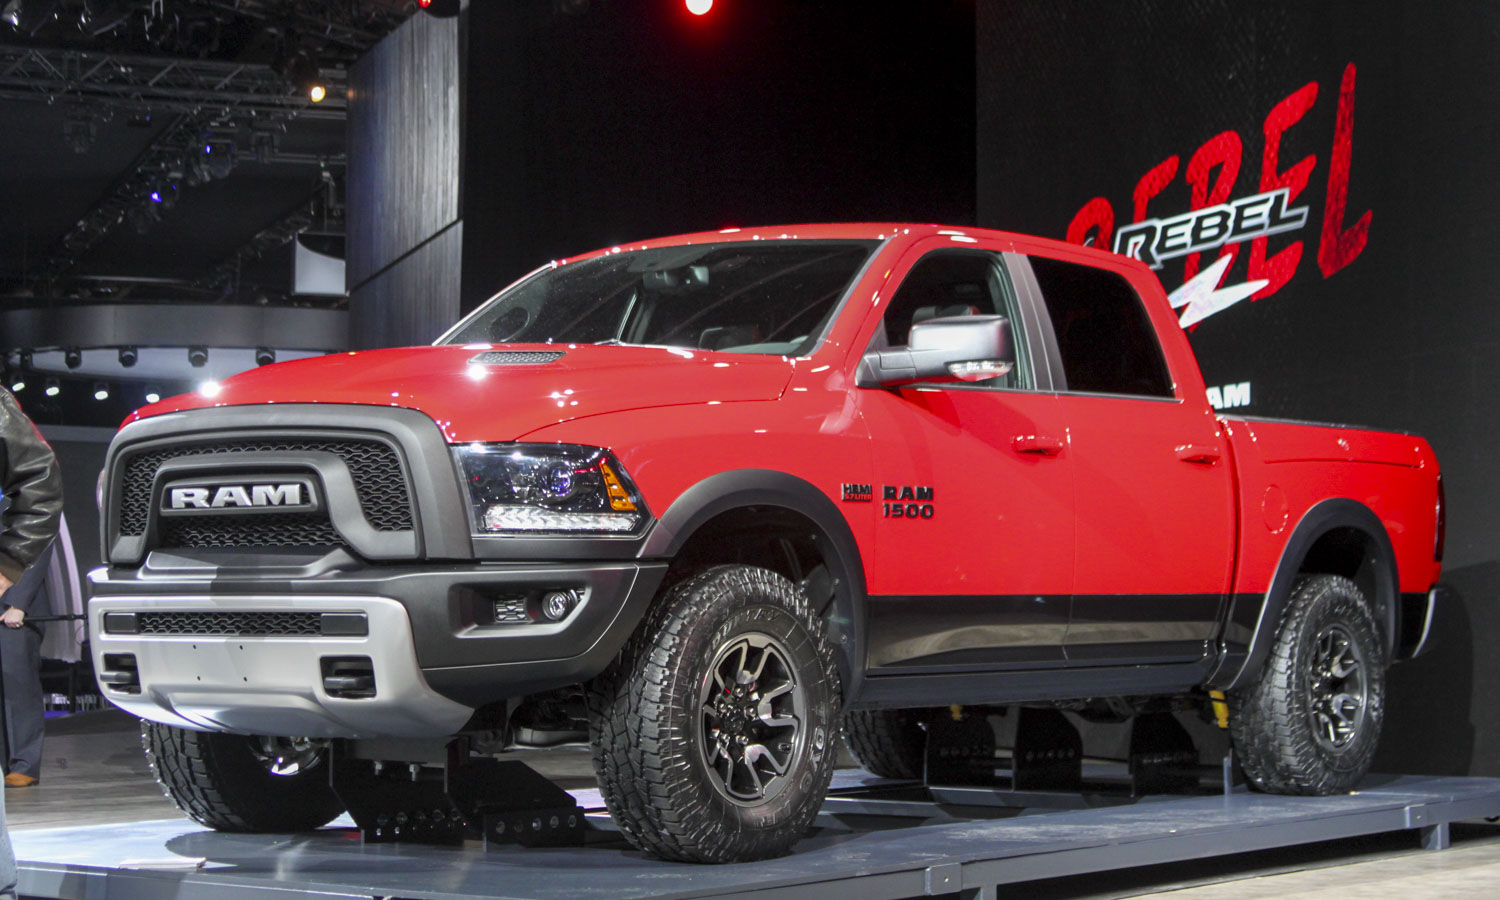 2015 Ram 1500 Rebel (c) Perry Stern